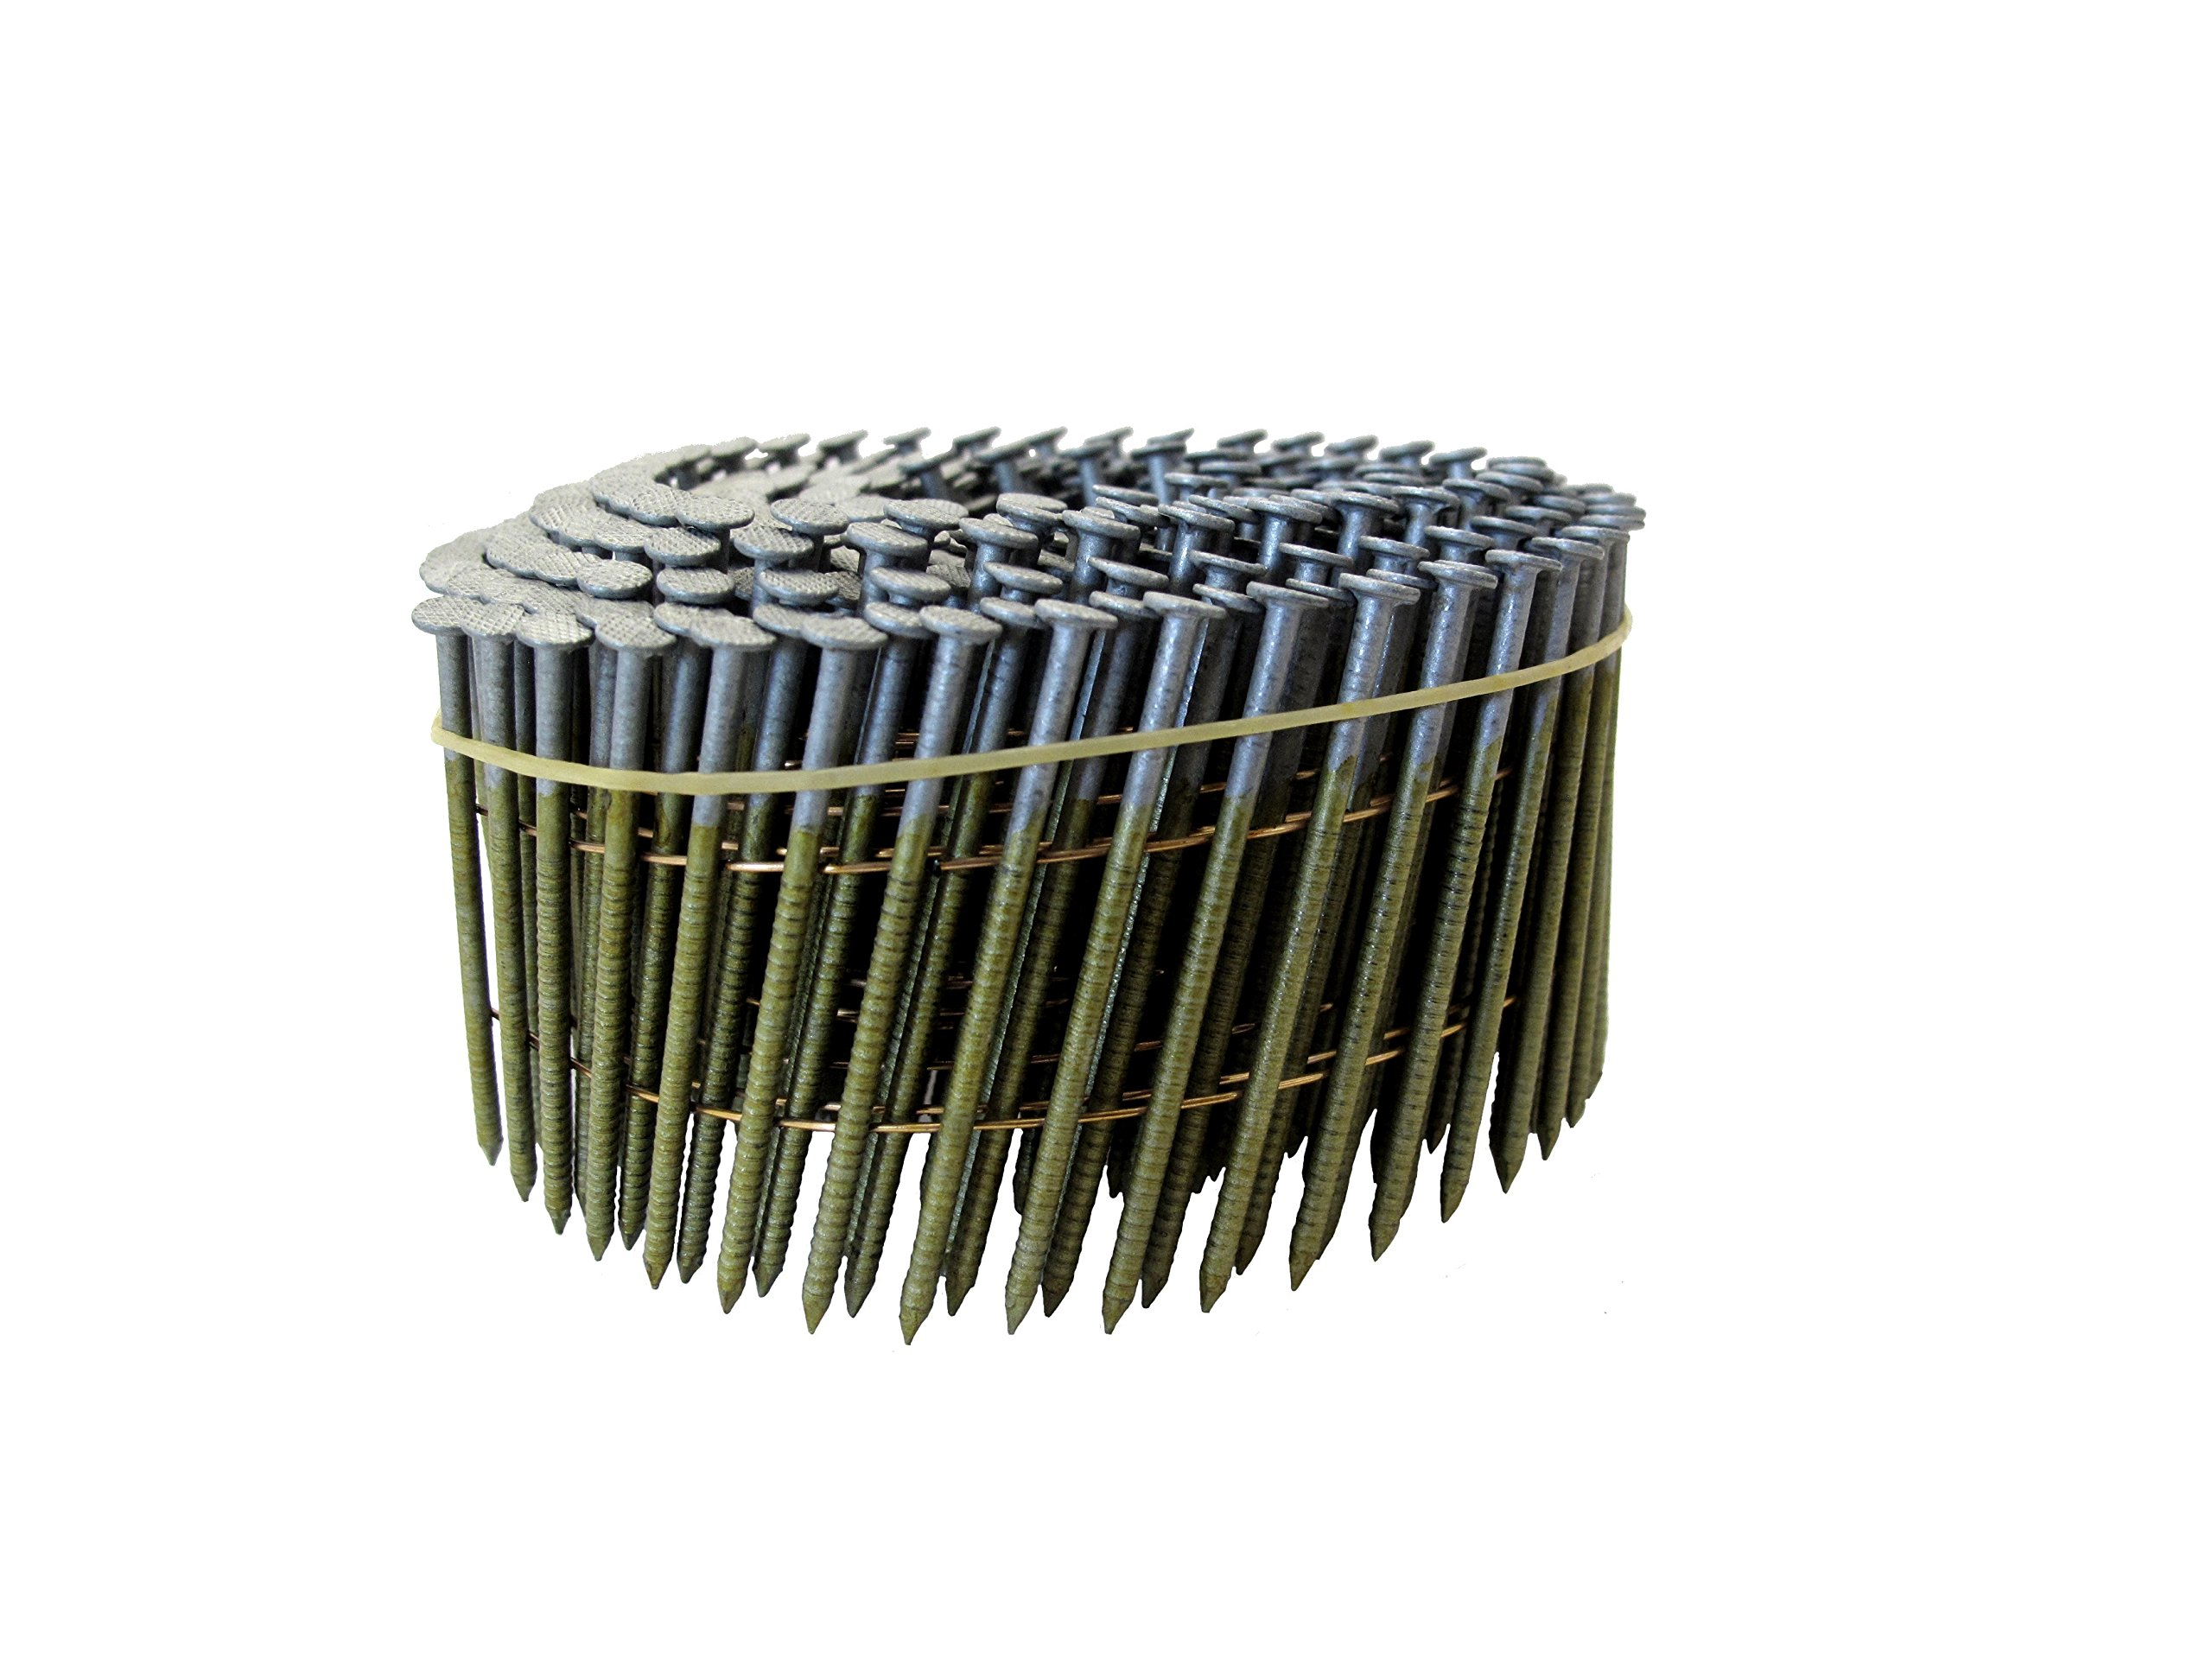 Grip Rite Prime Guard GRC7R92HG1 15 degree Wire Weld Coil Exterior Galvanized Collated Fencing and Siding Nails, 2-3/16'' x 0.092''